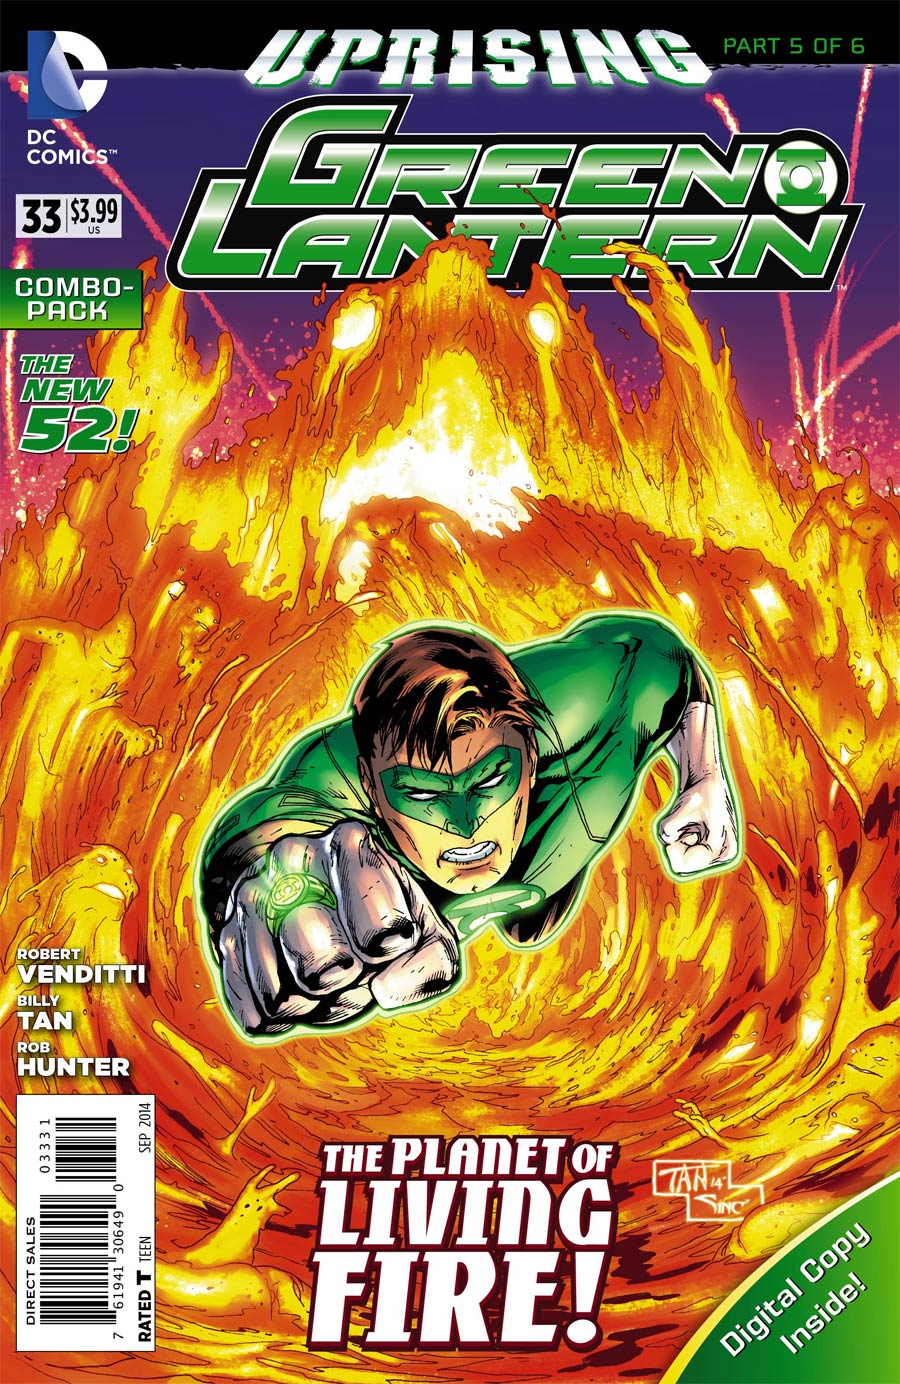 Green Lantern Vol 5 #33 Cover C Combo Pack With Polybag (Uprising Part 5)